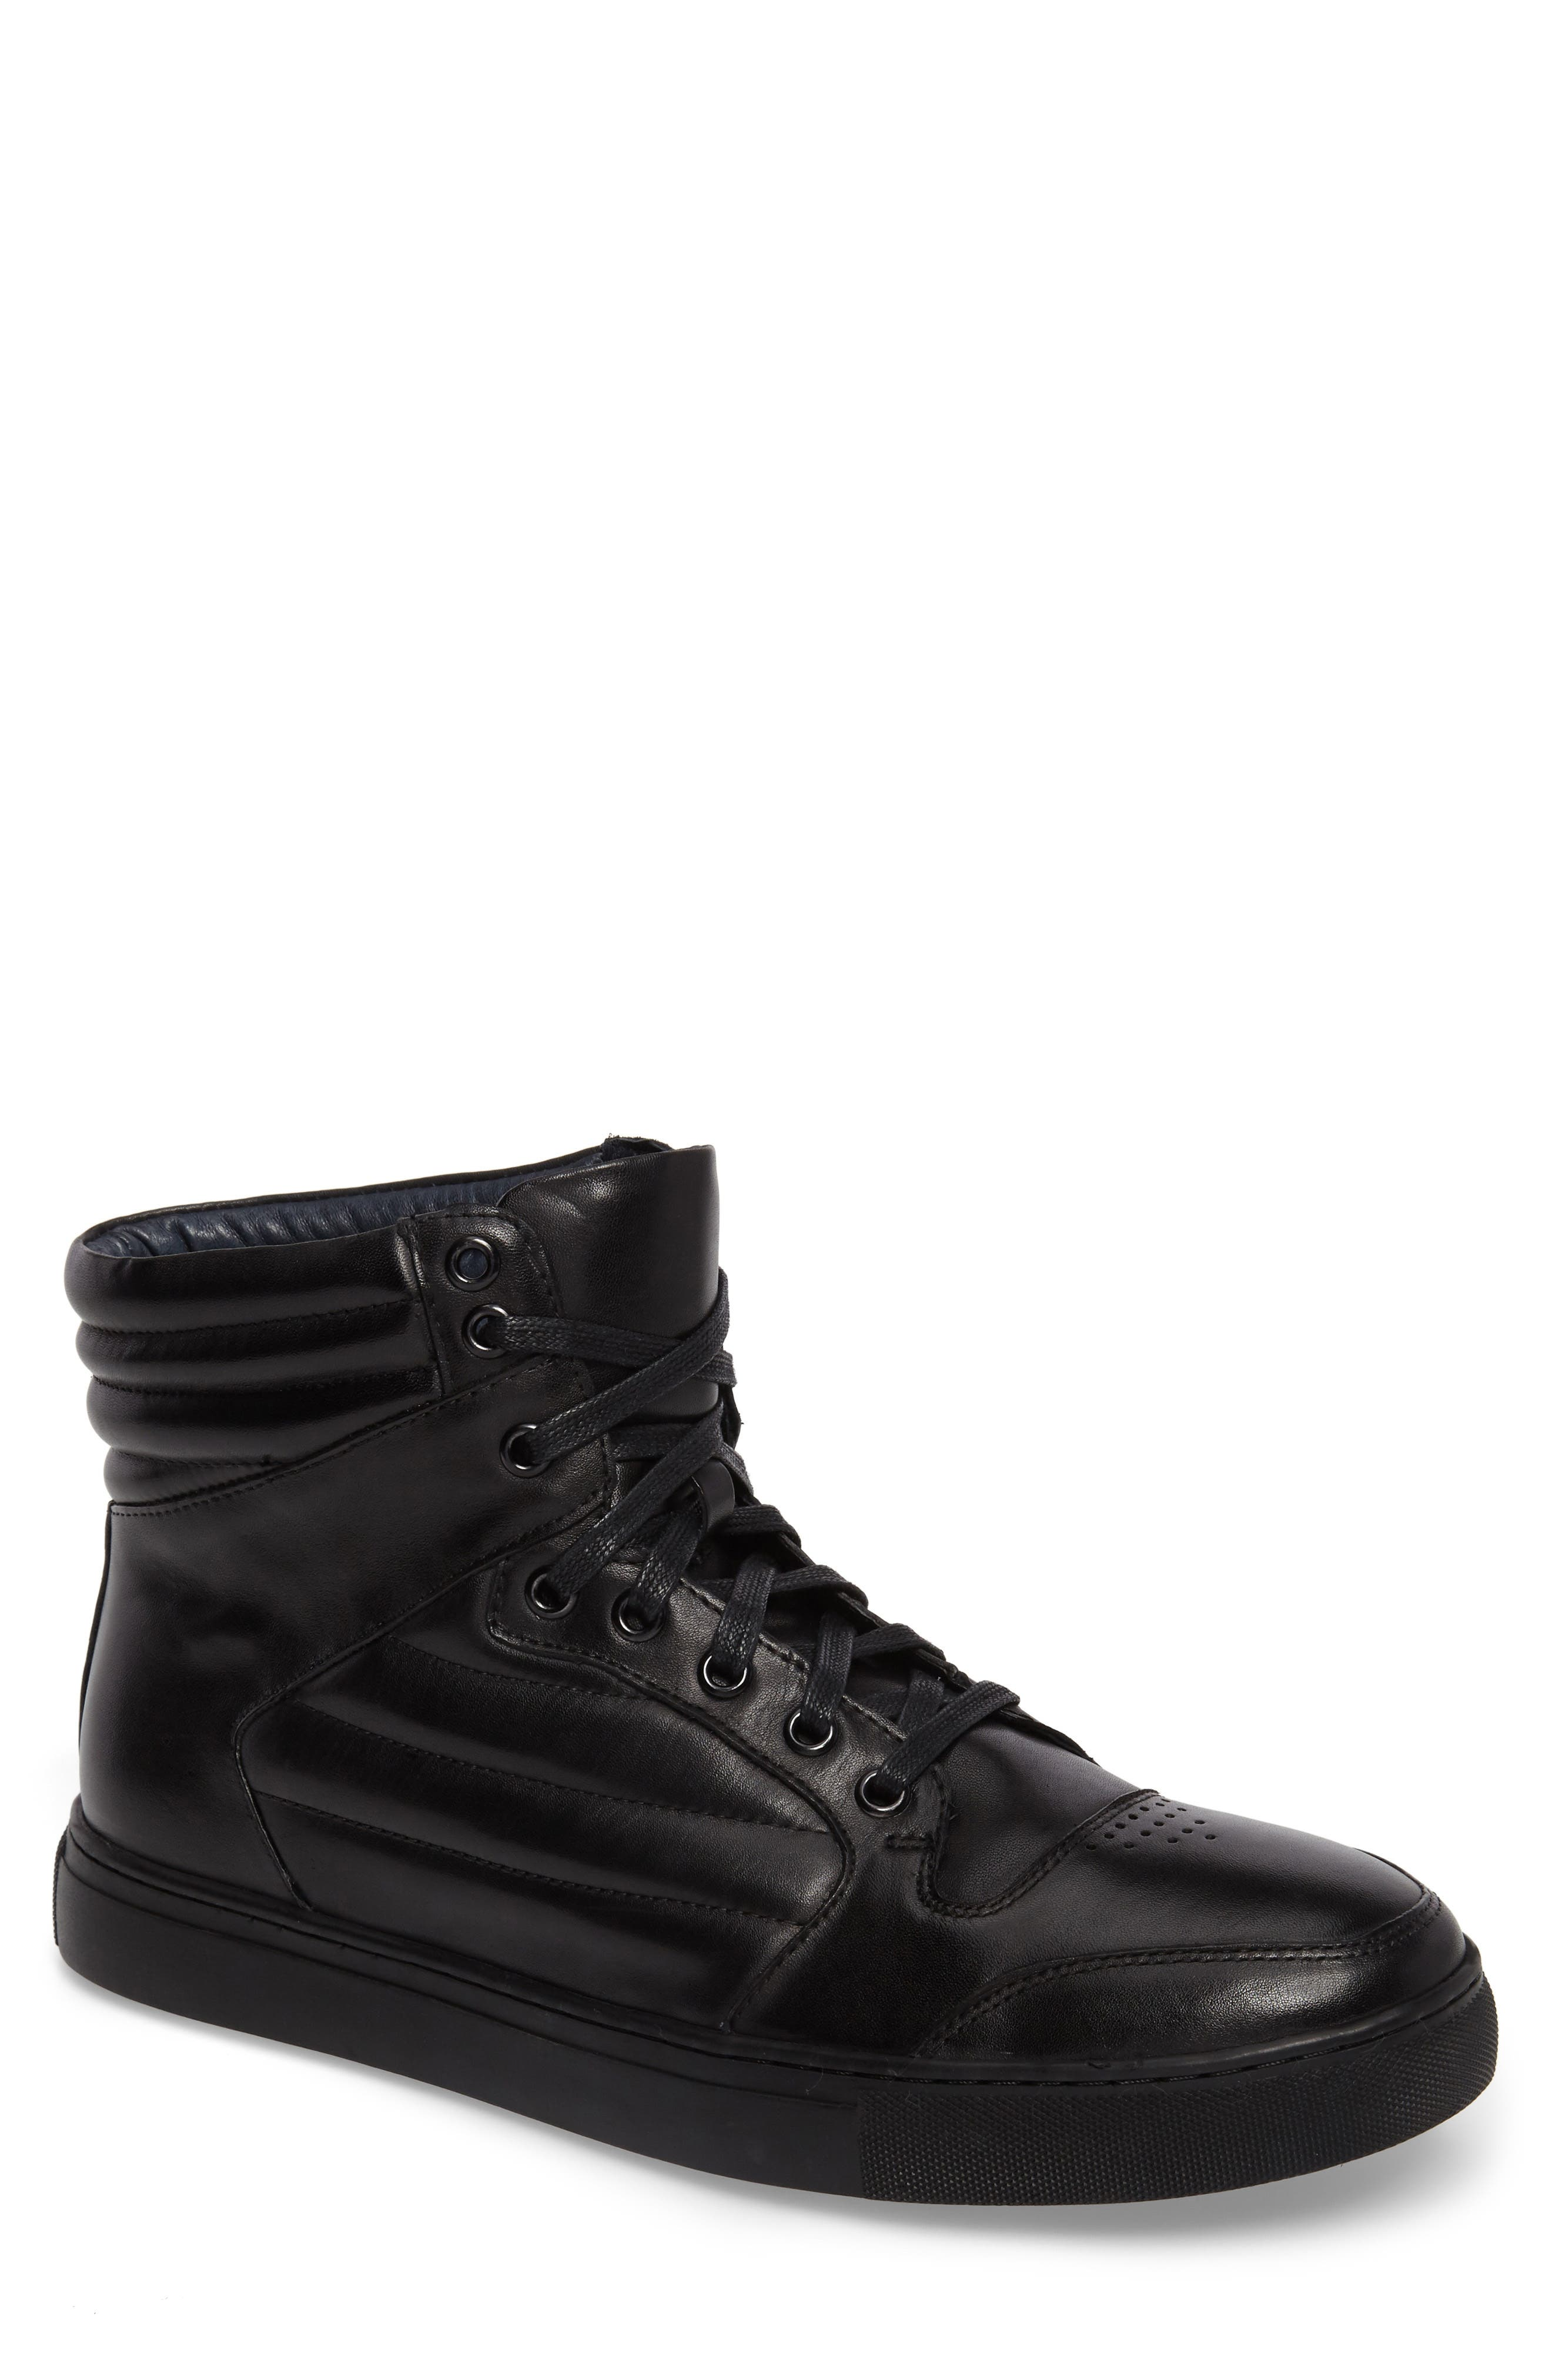 Vacdes High Top Sneaker,                         Main,                         color, Black Leather